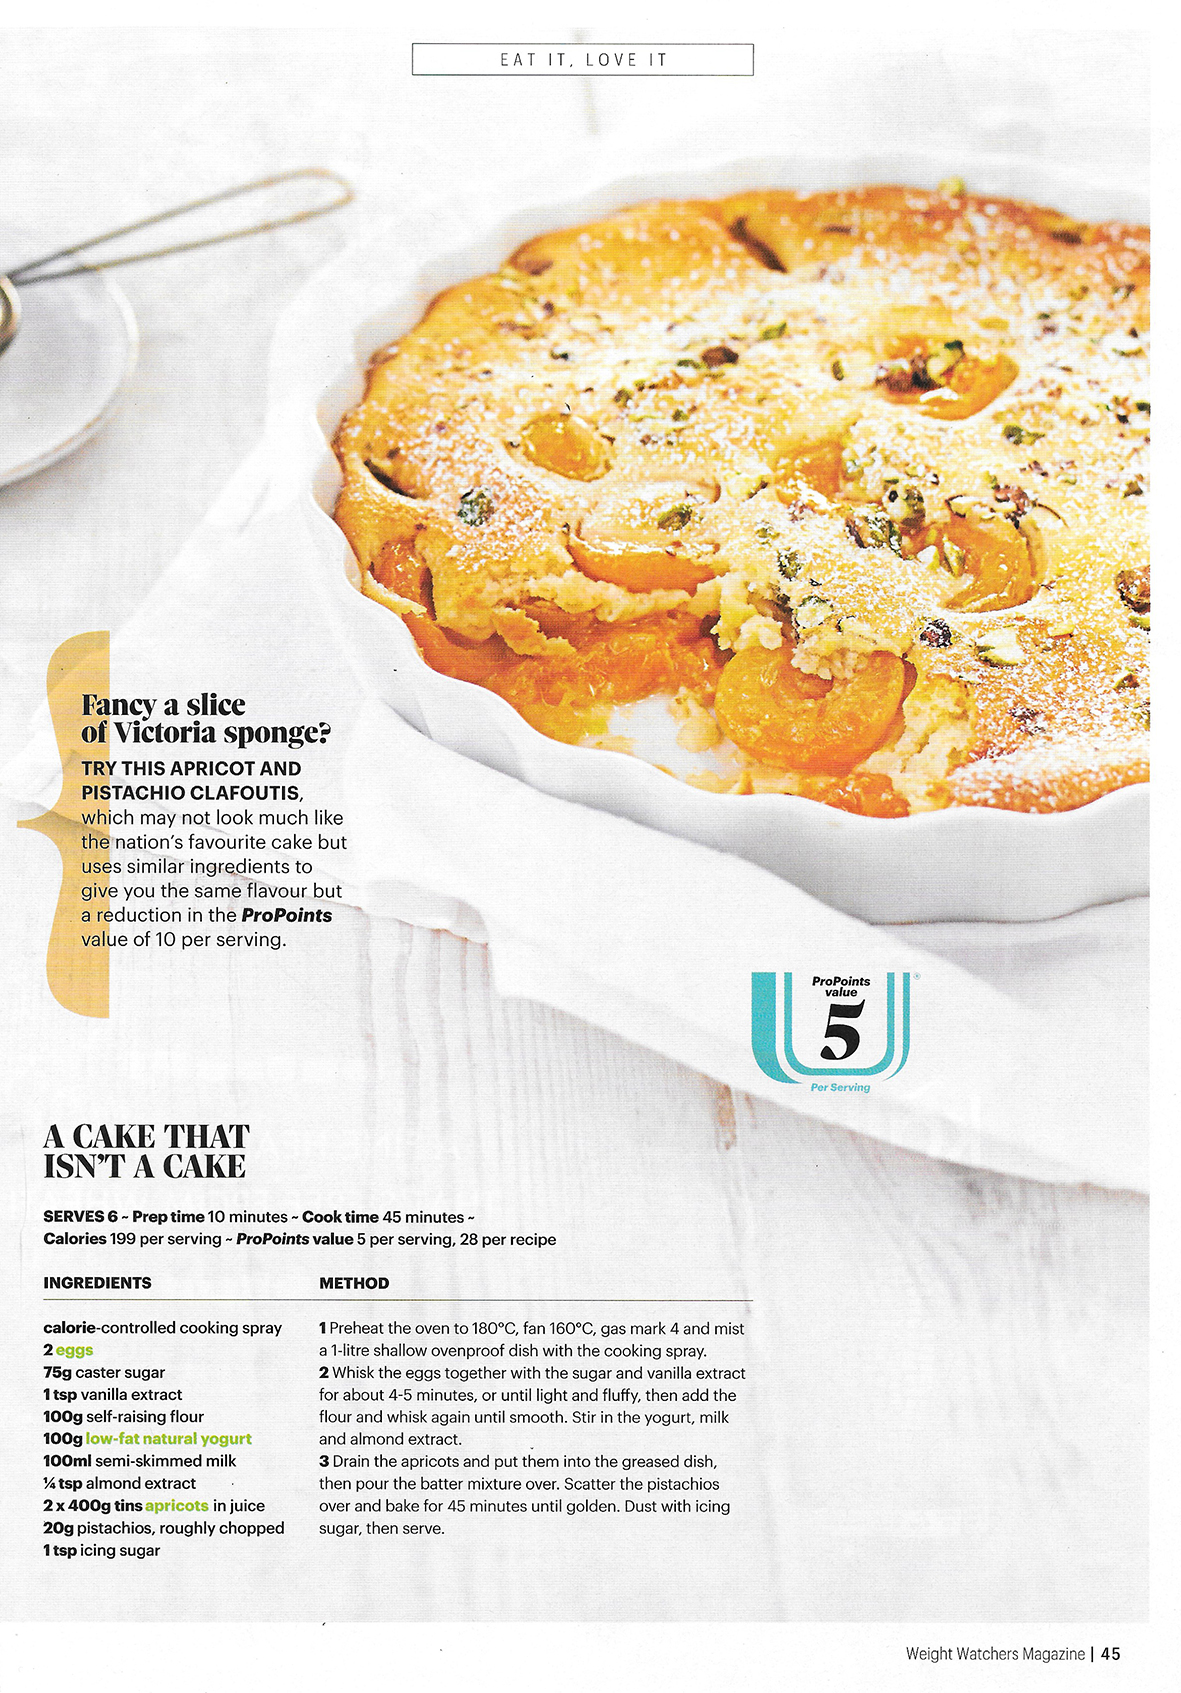 Apricot Clafoutis for Weight Watchers Magazine